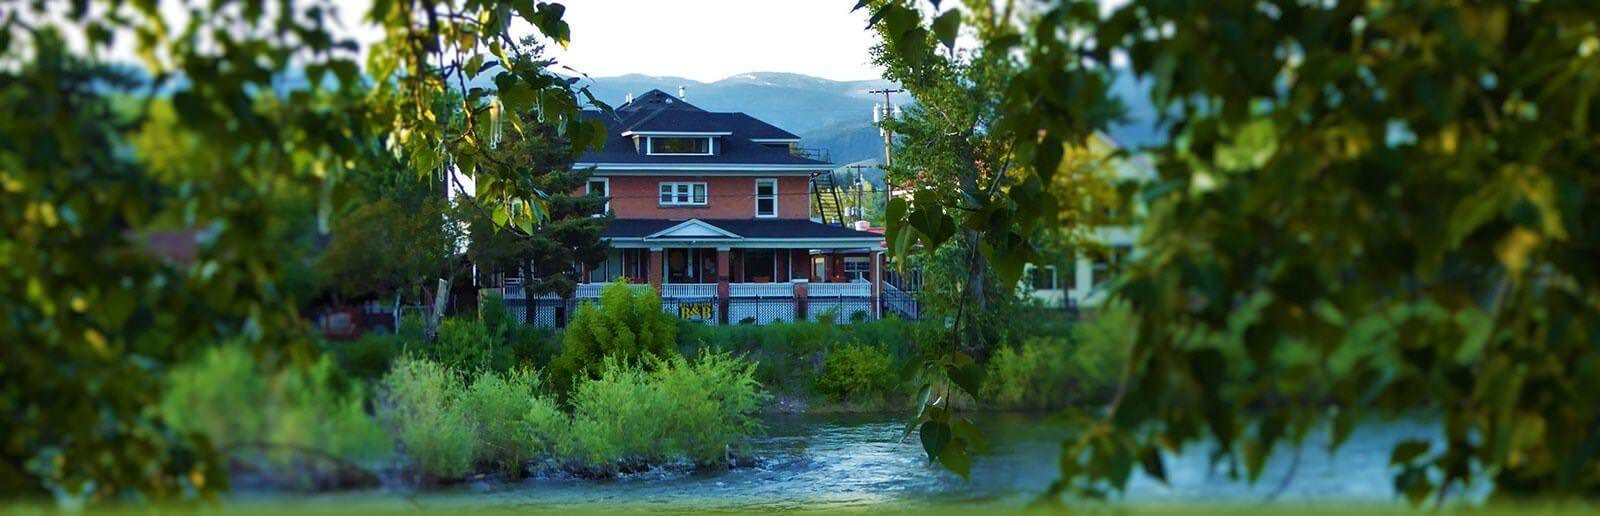 Ultimate List of Best Luxury Hotels in Missoula, Montana, Goldsmith's Bed and Breakfast